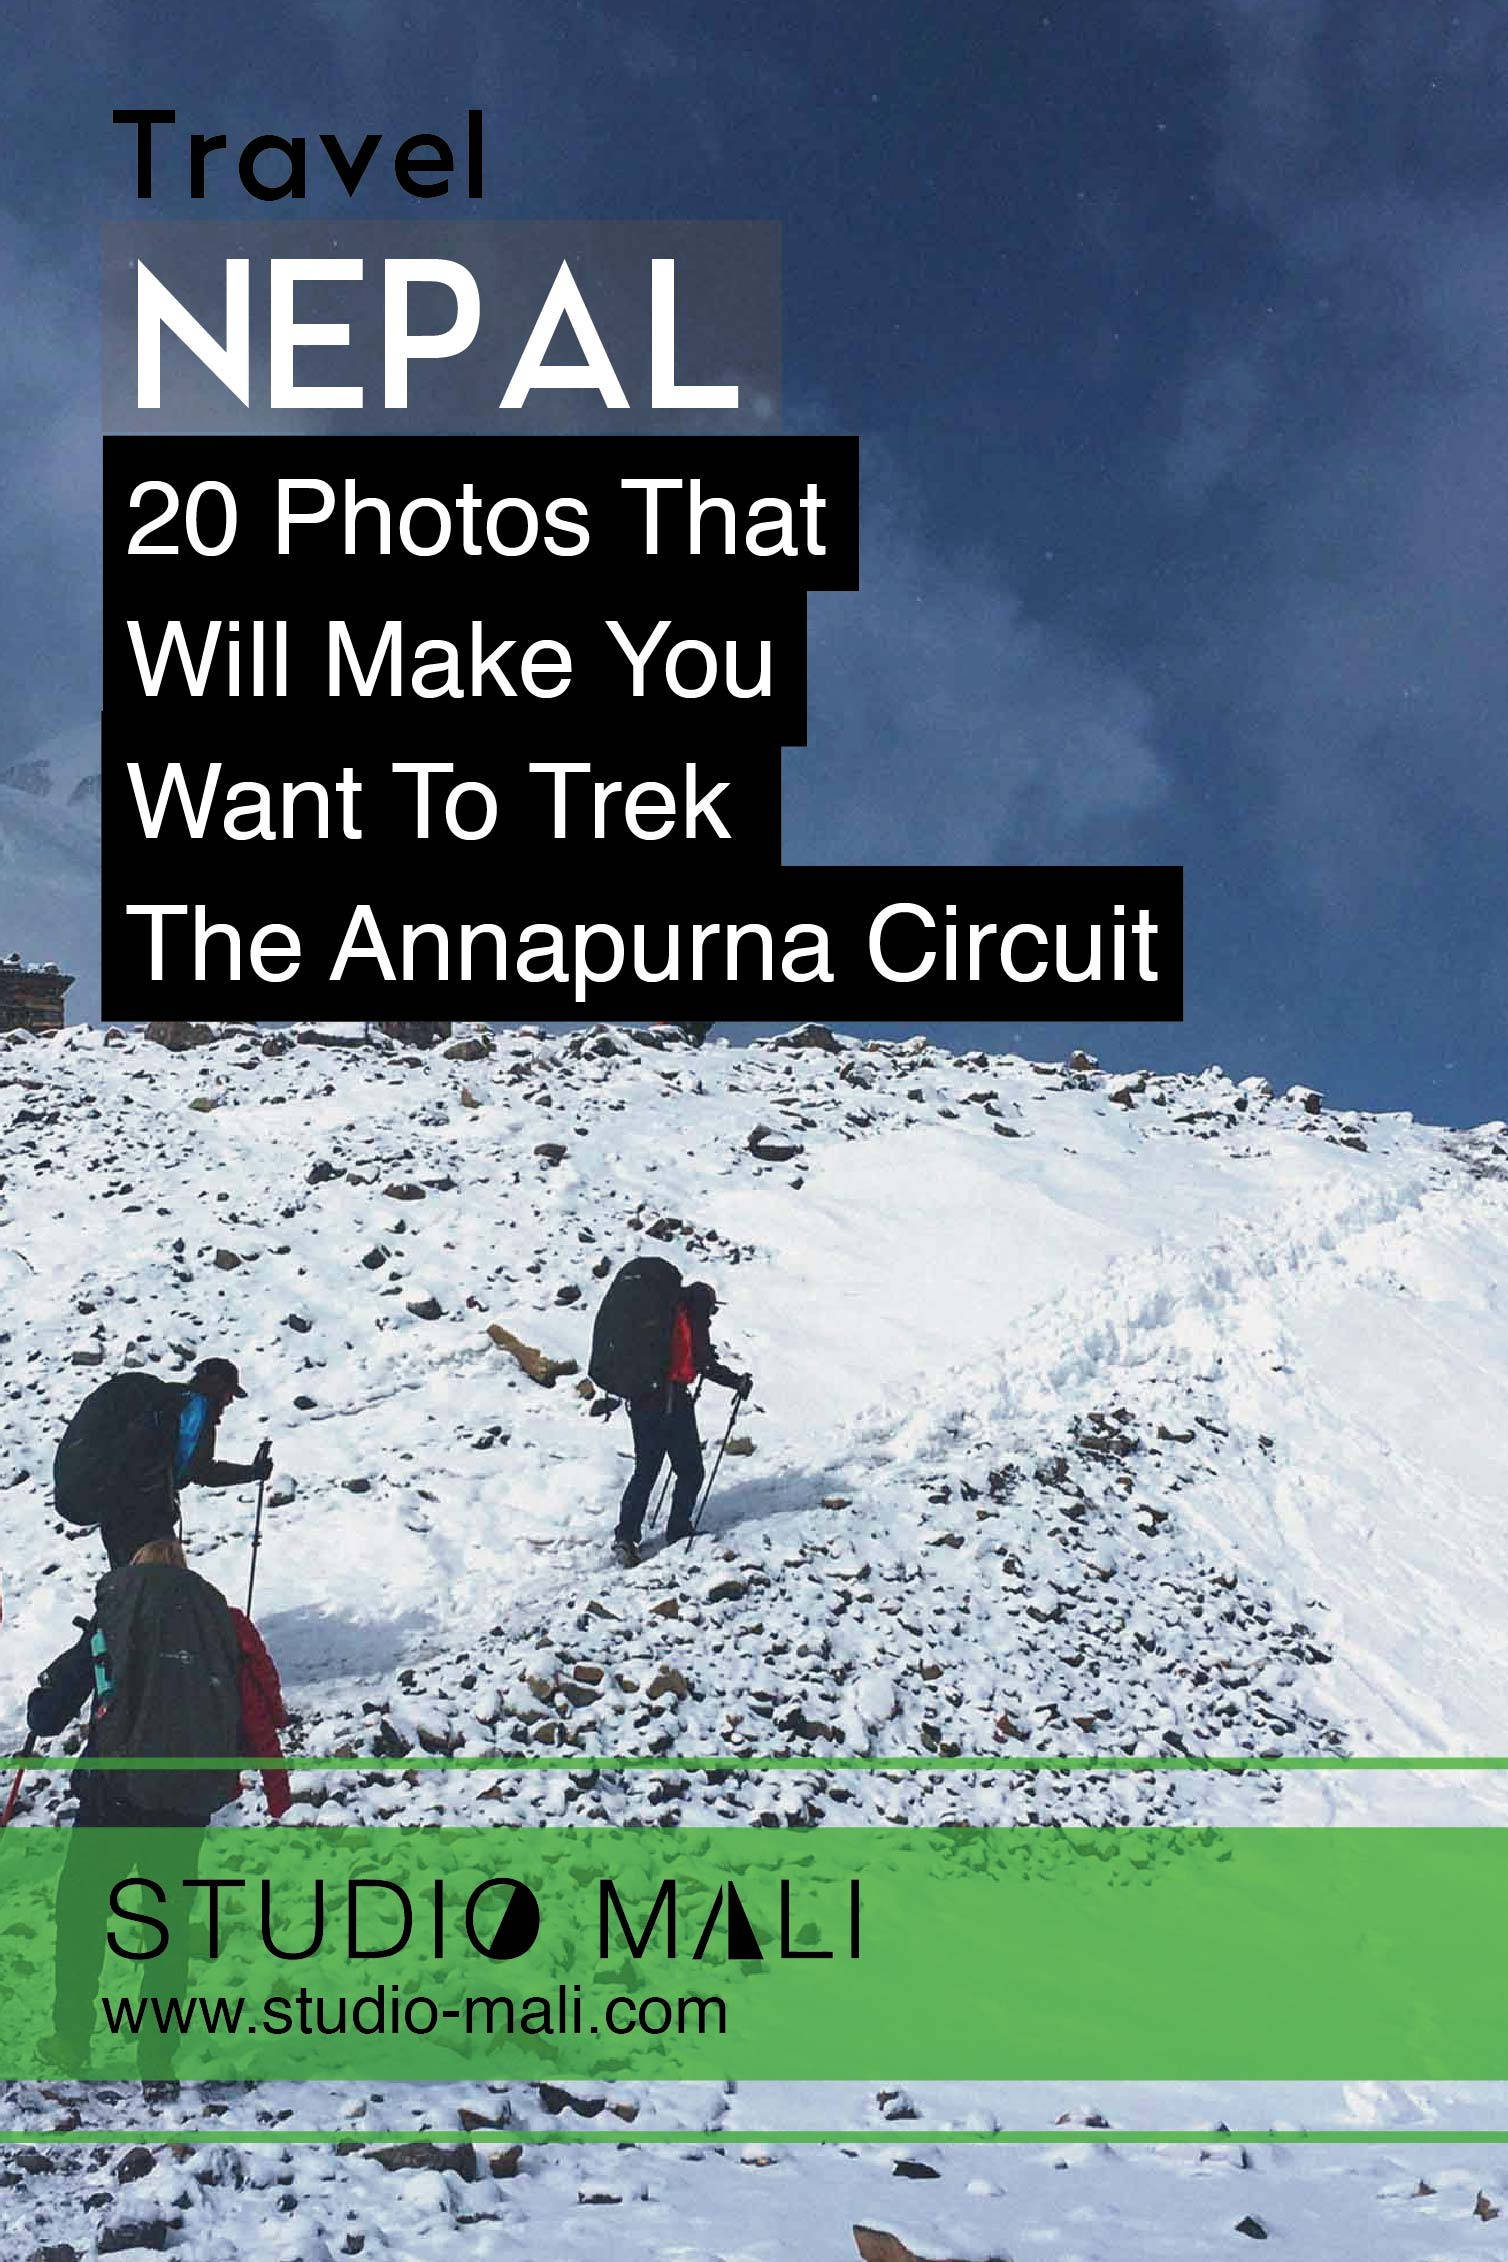 Nepal- 20 Photos That Will Make You Want To Trek The Annapurna Circuit By Studio Mali.jpg